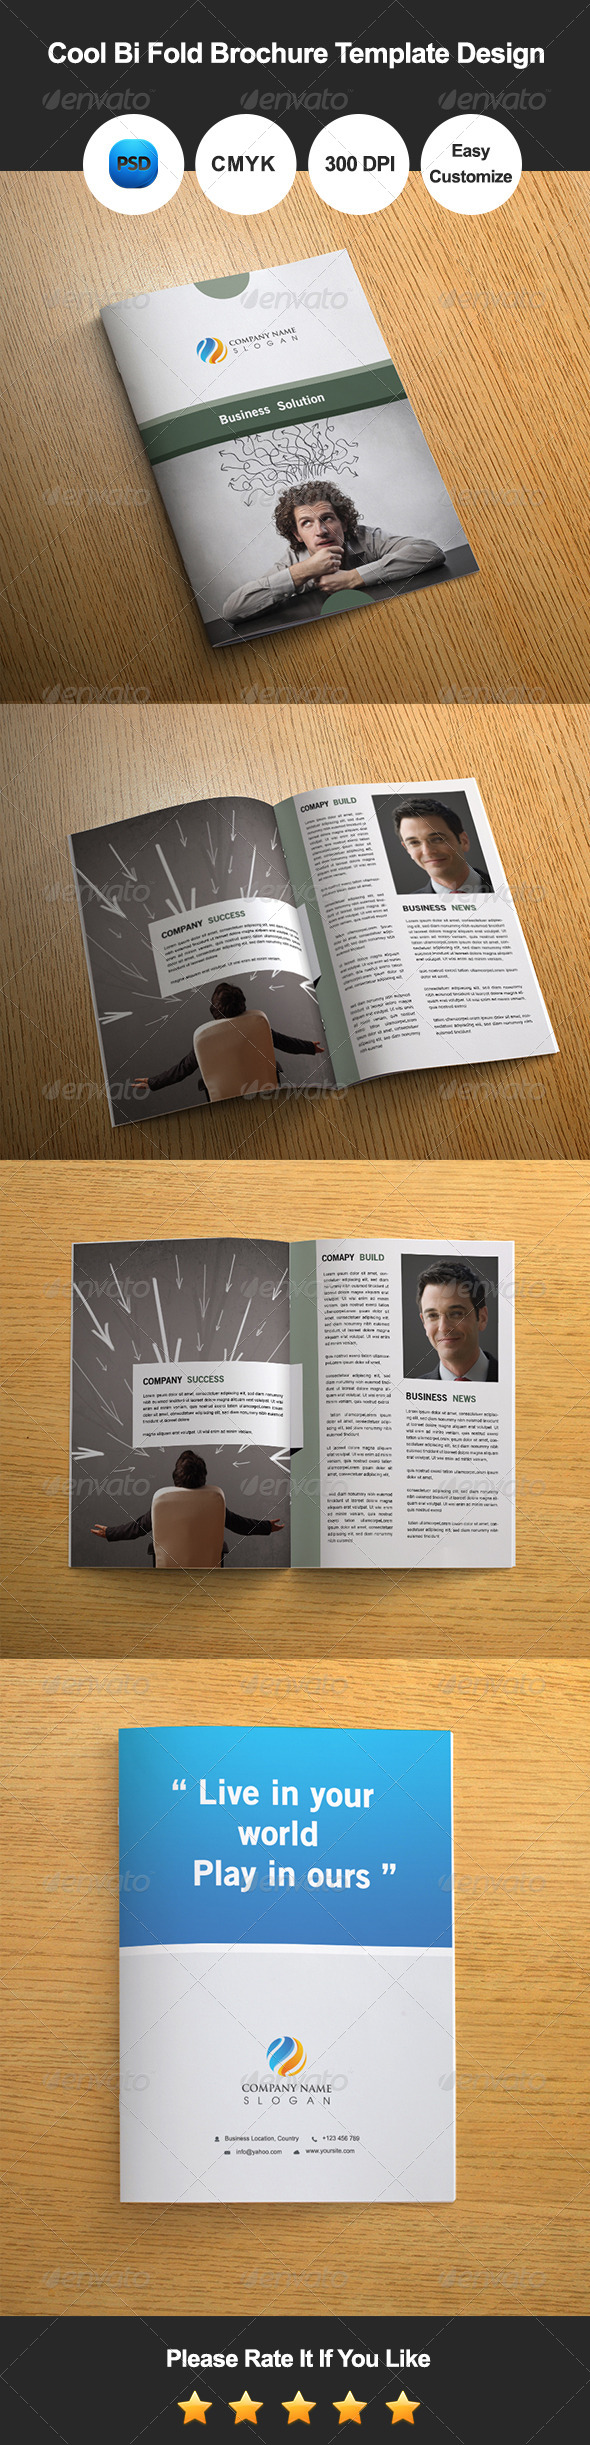 GraphicRiver Cool Bi Fold Brochure Template Design 8045878